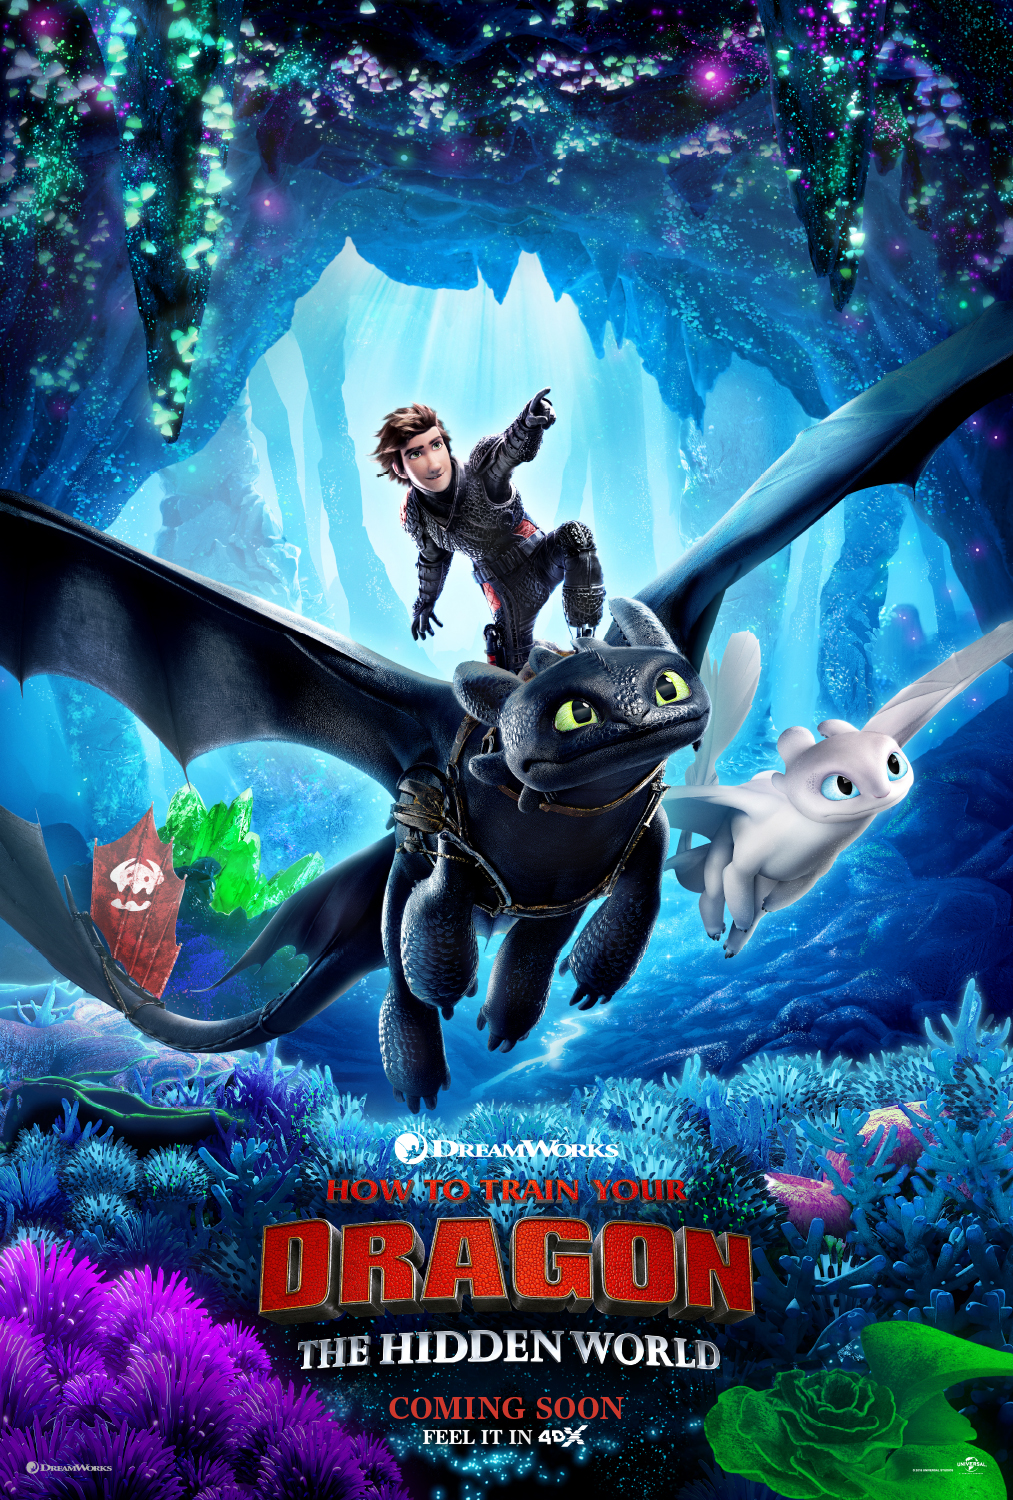 """How to Train Your Dragon 3"" 4DX, a warp gate to Universal Theme Parks for Kids and Family..."